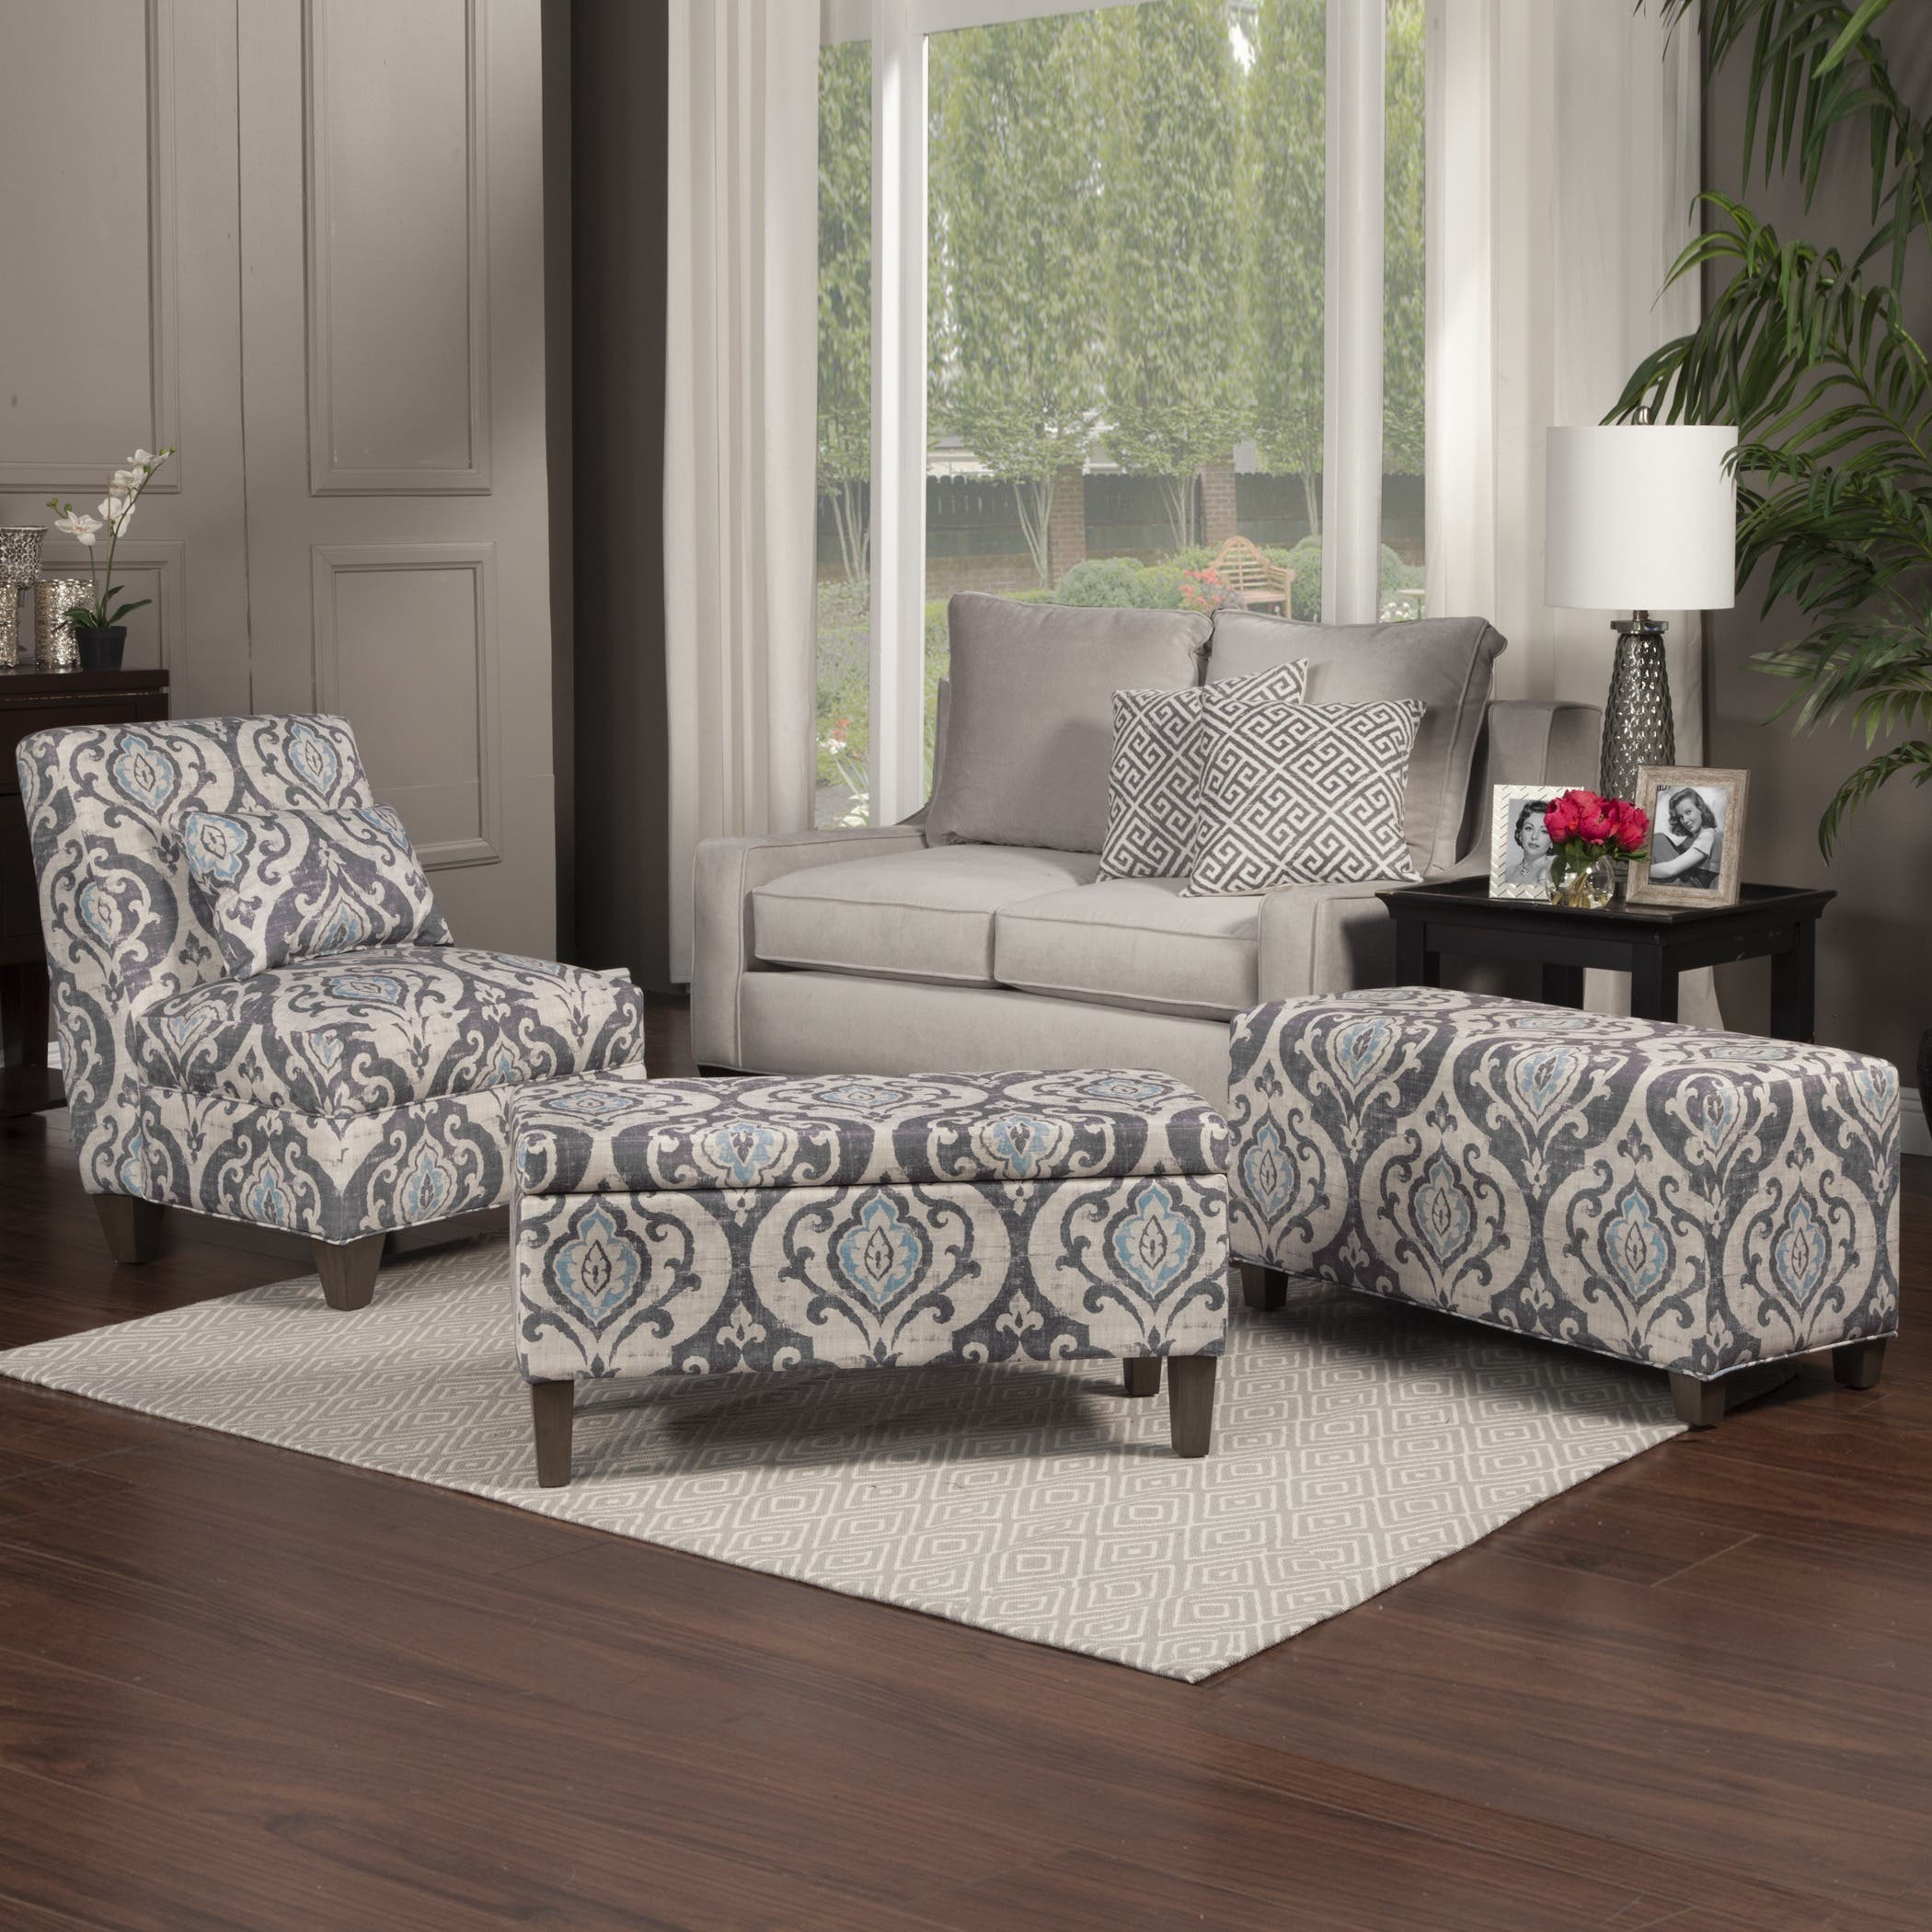 decorative ottomans living room buy ottomans amp storage ottomans at overstock 14907